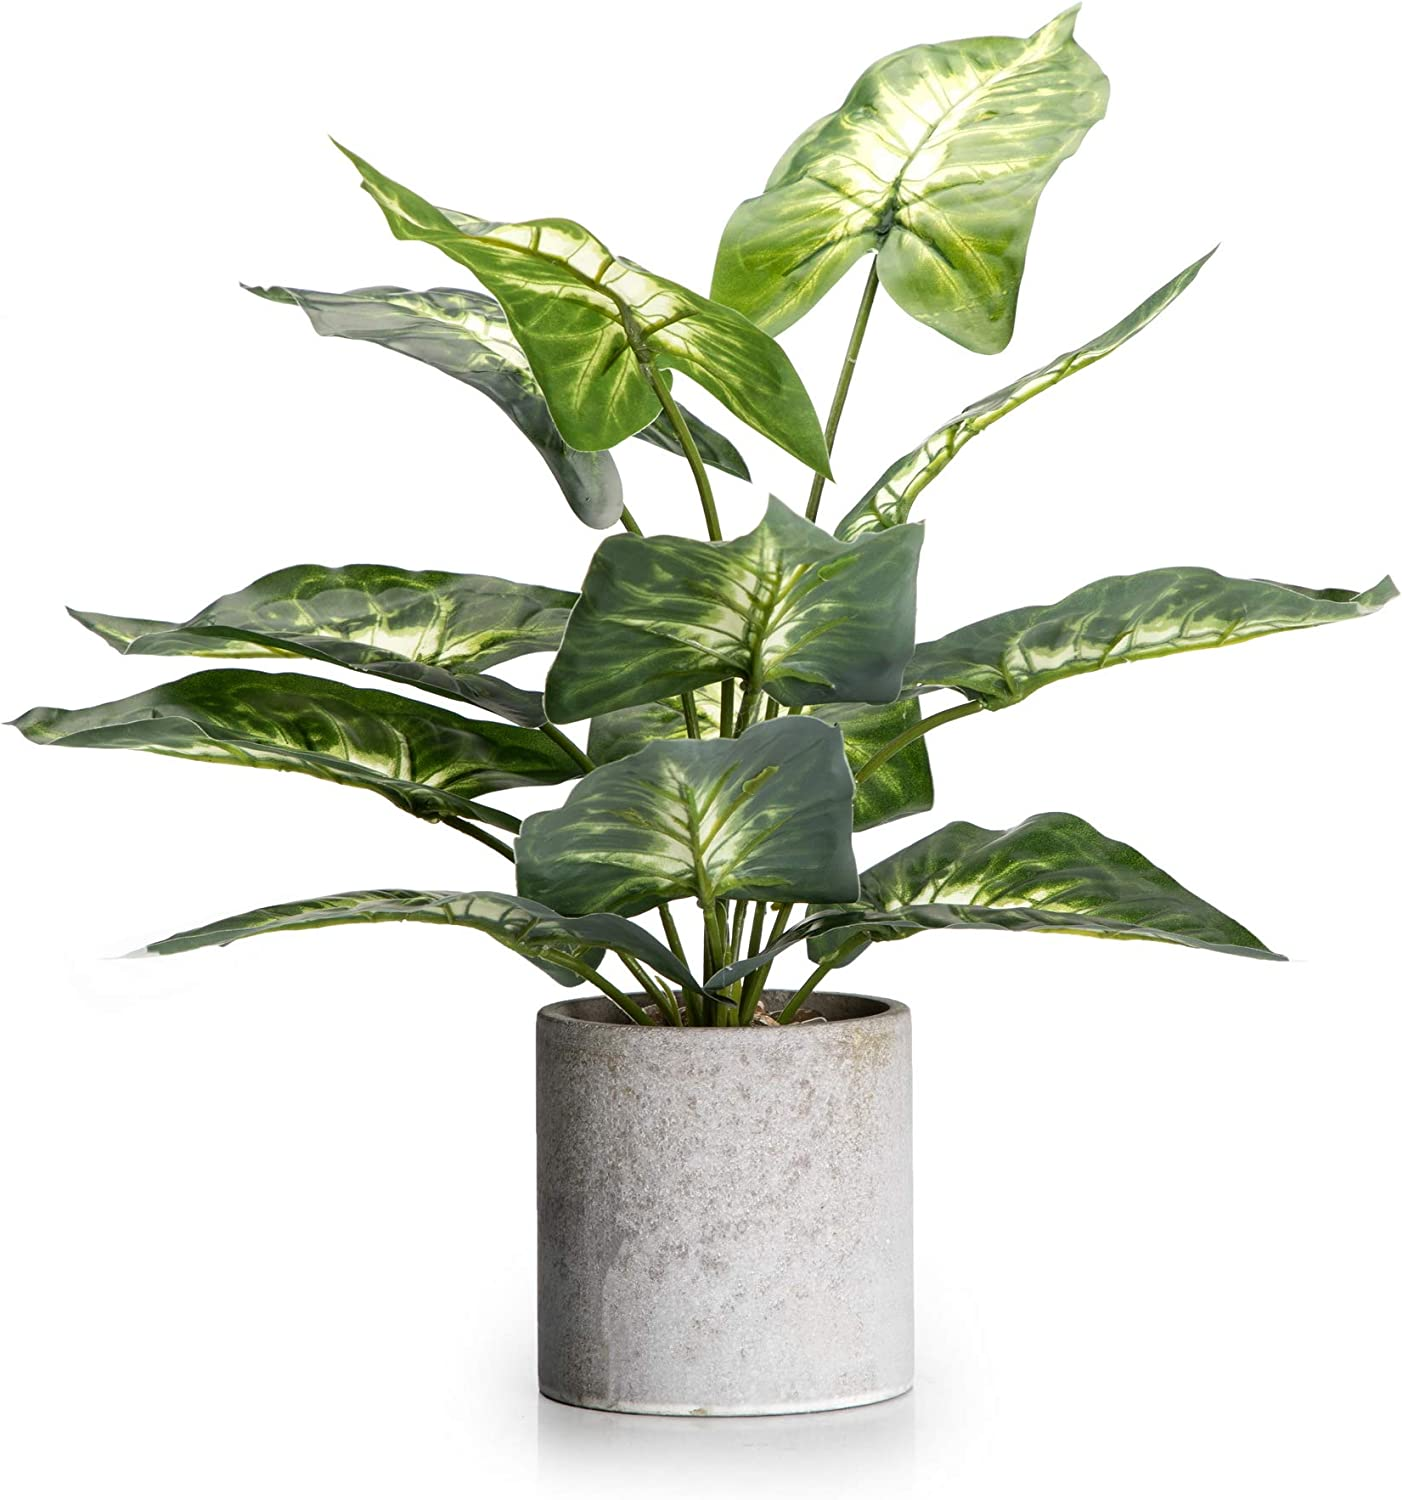 "Velener 15"" Artificial Potted Green Leaf Plant in Pot for Desk Top Decor (Taro Leaf)"